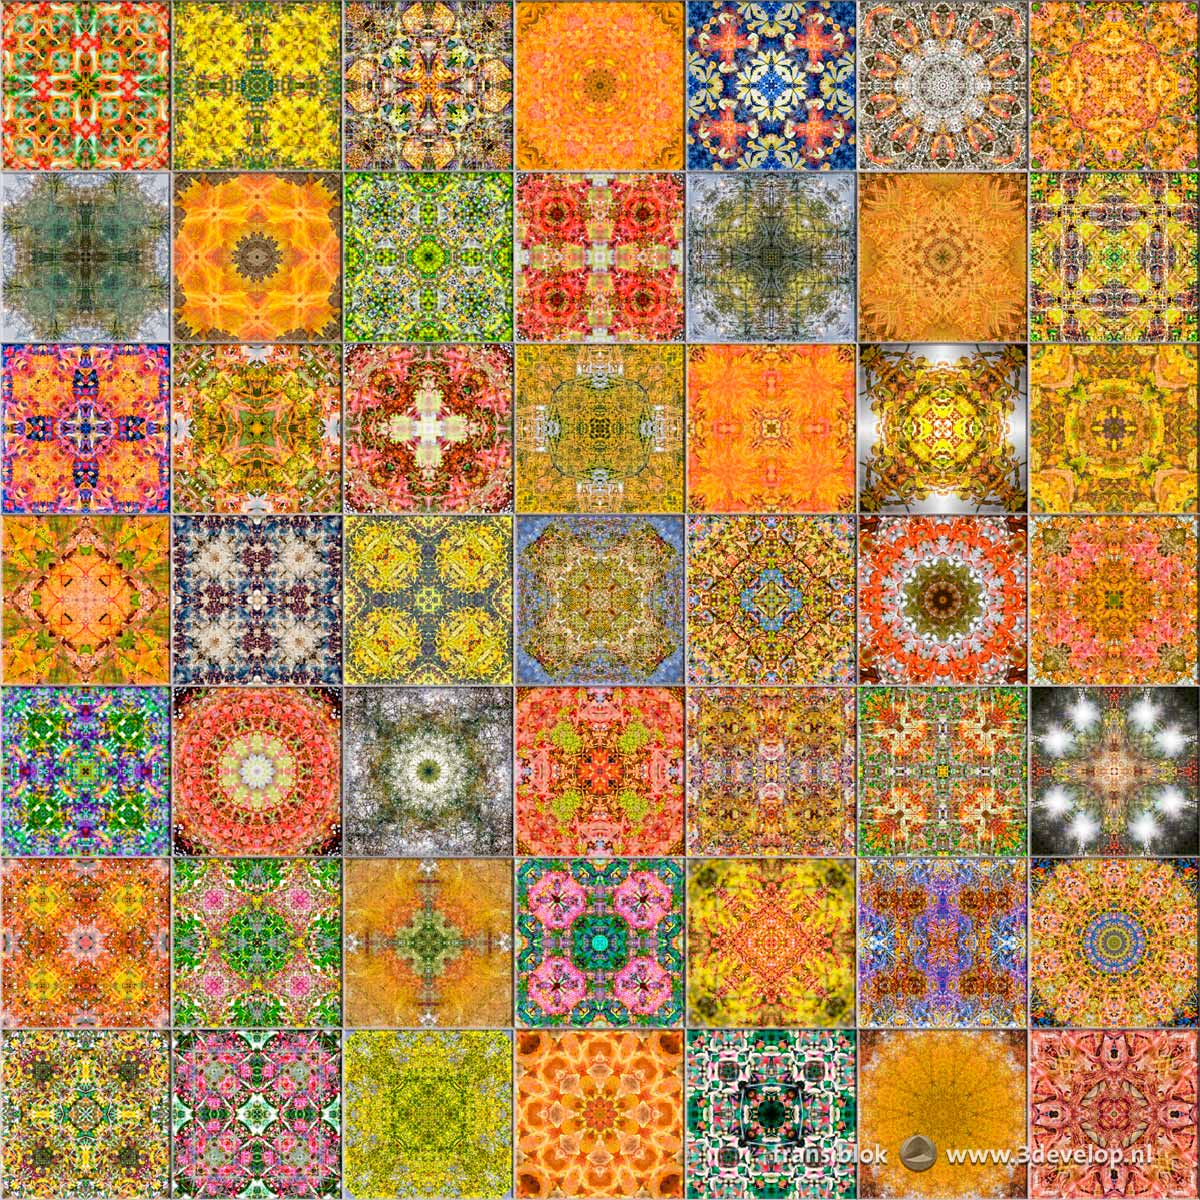 49 multicolored kaleidoscopic patterns like tiles on a wall